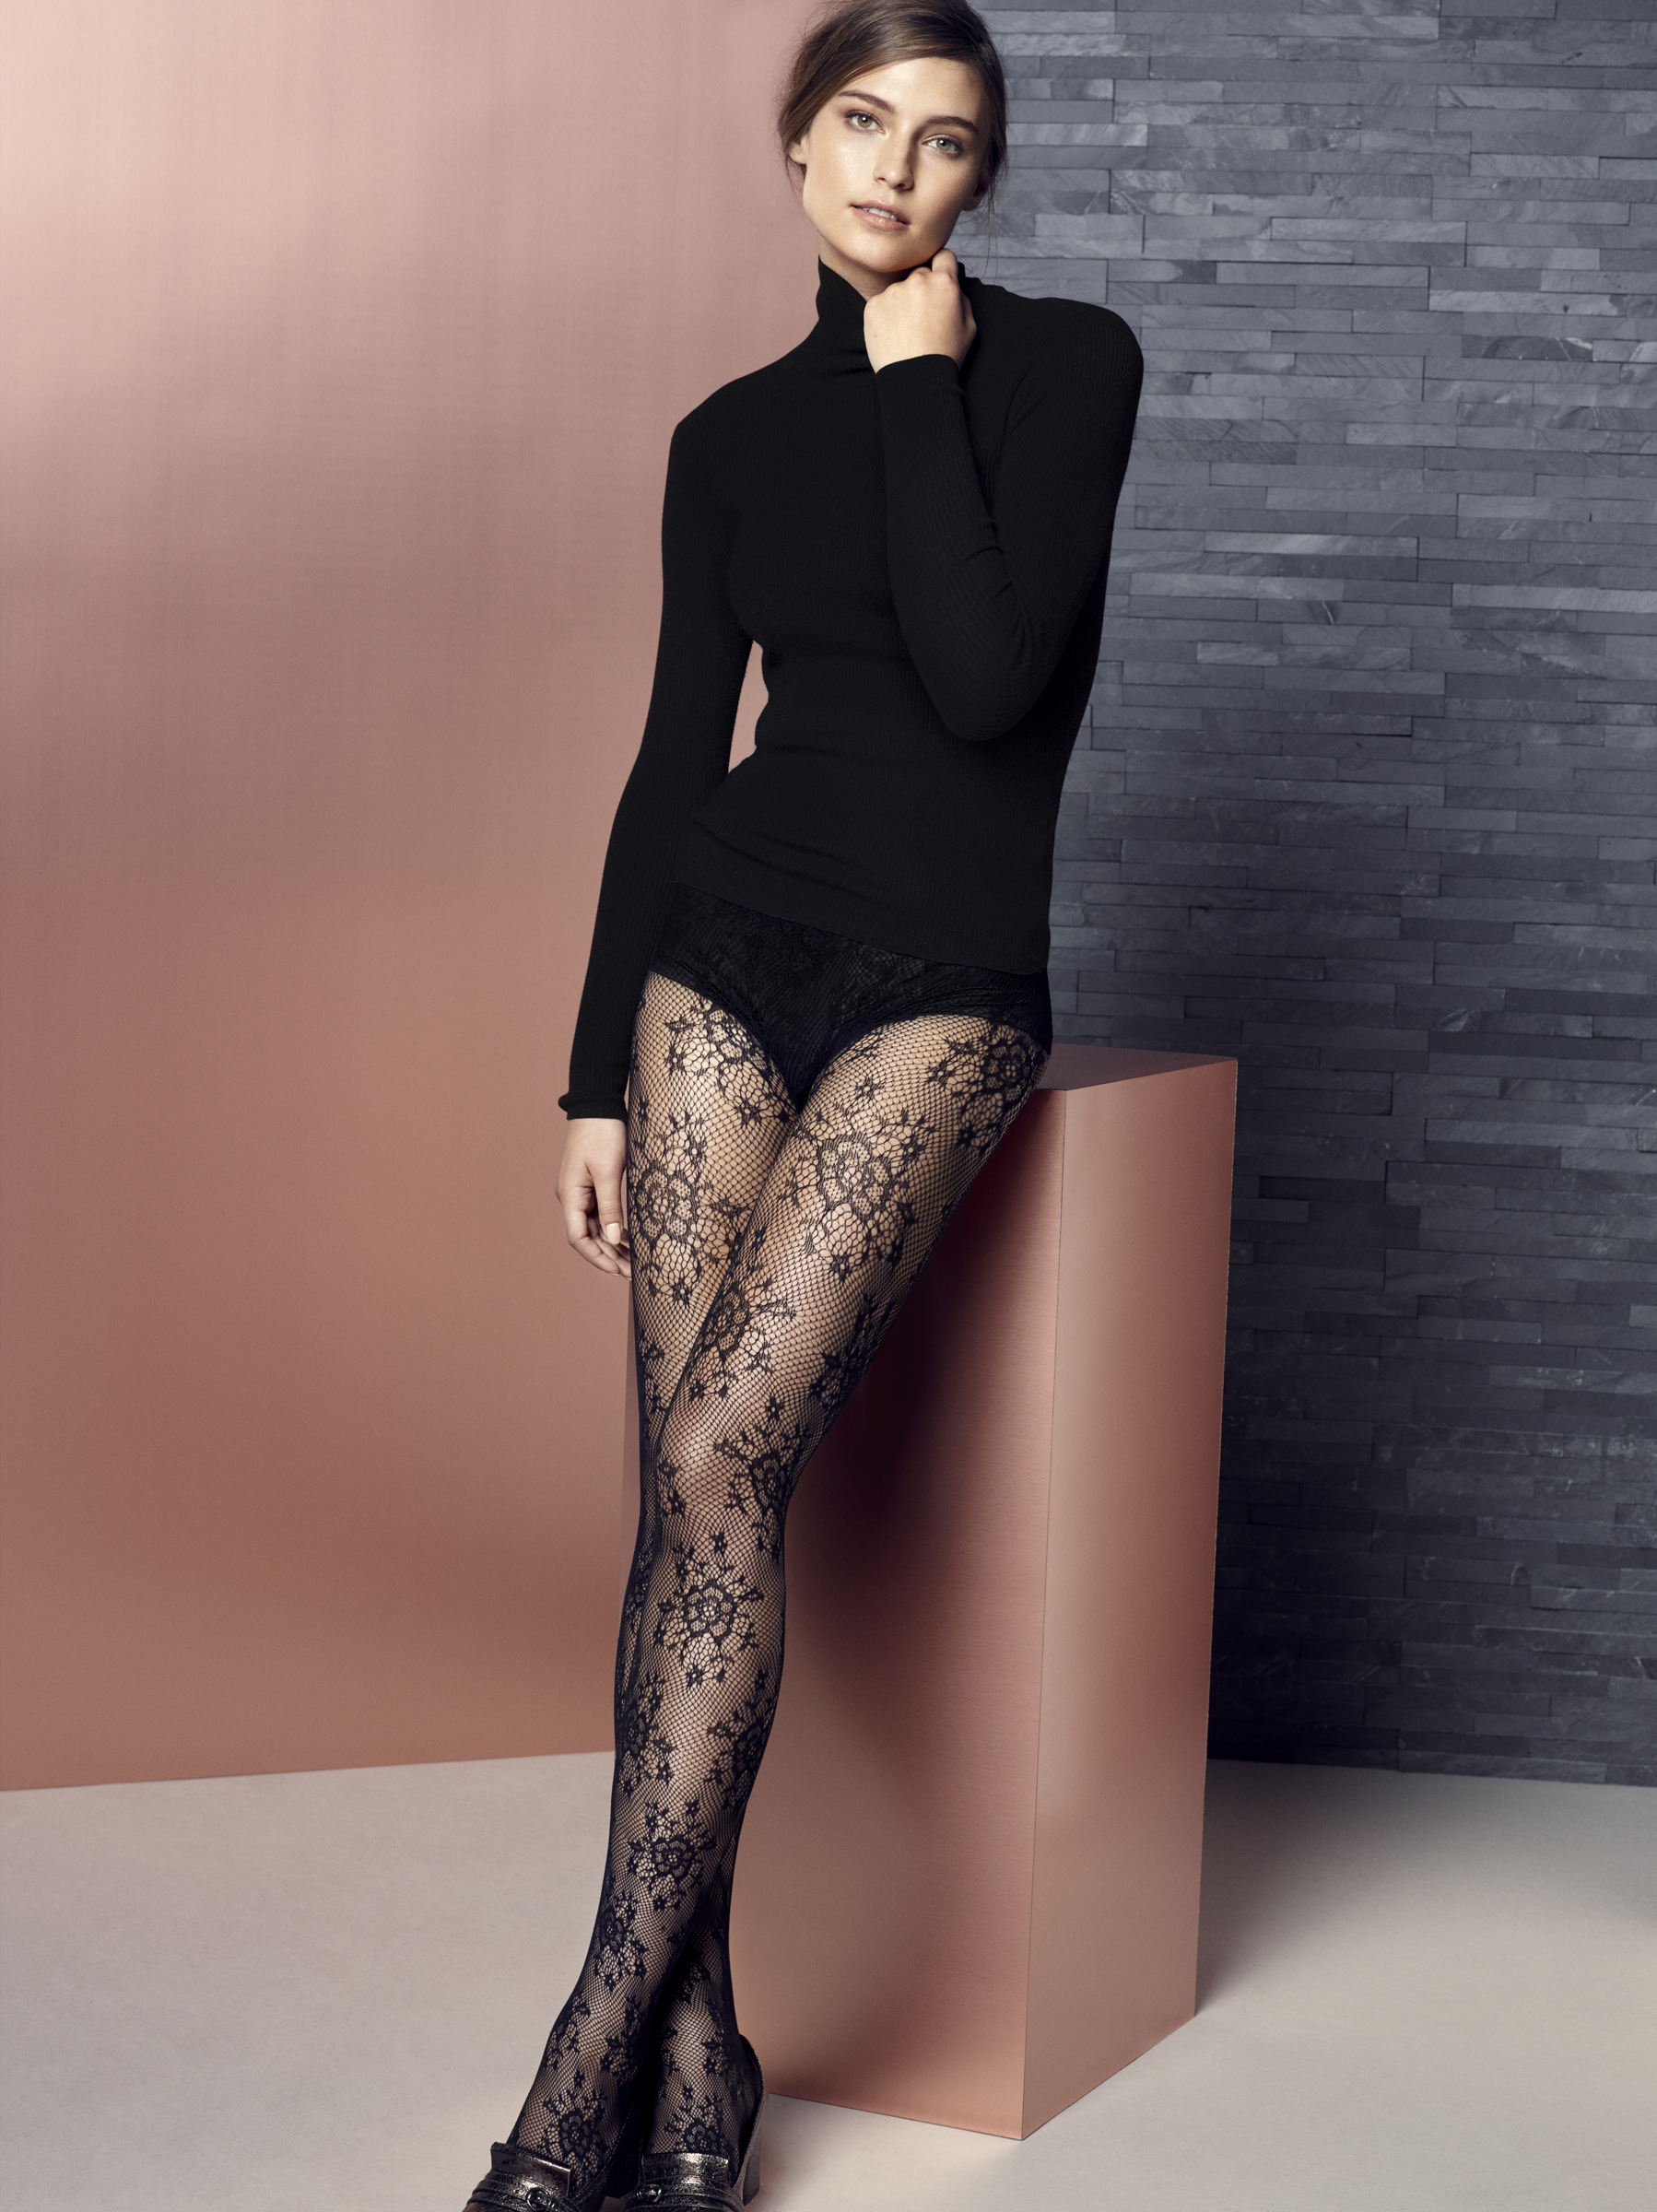 marksandspencer_982011094113492 Tights_59 lei